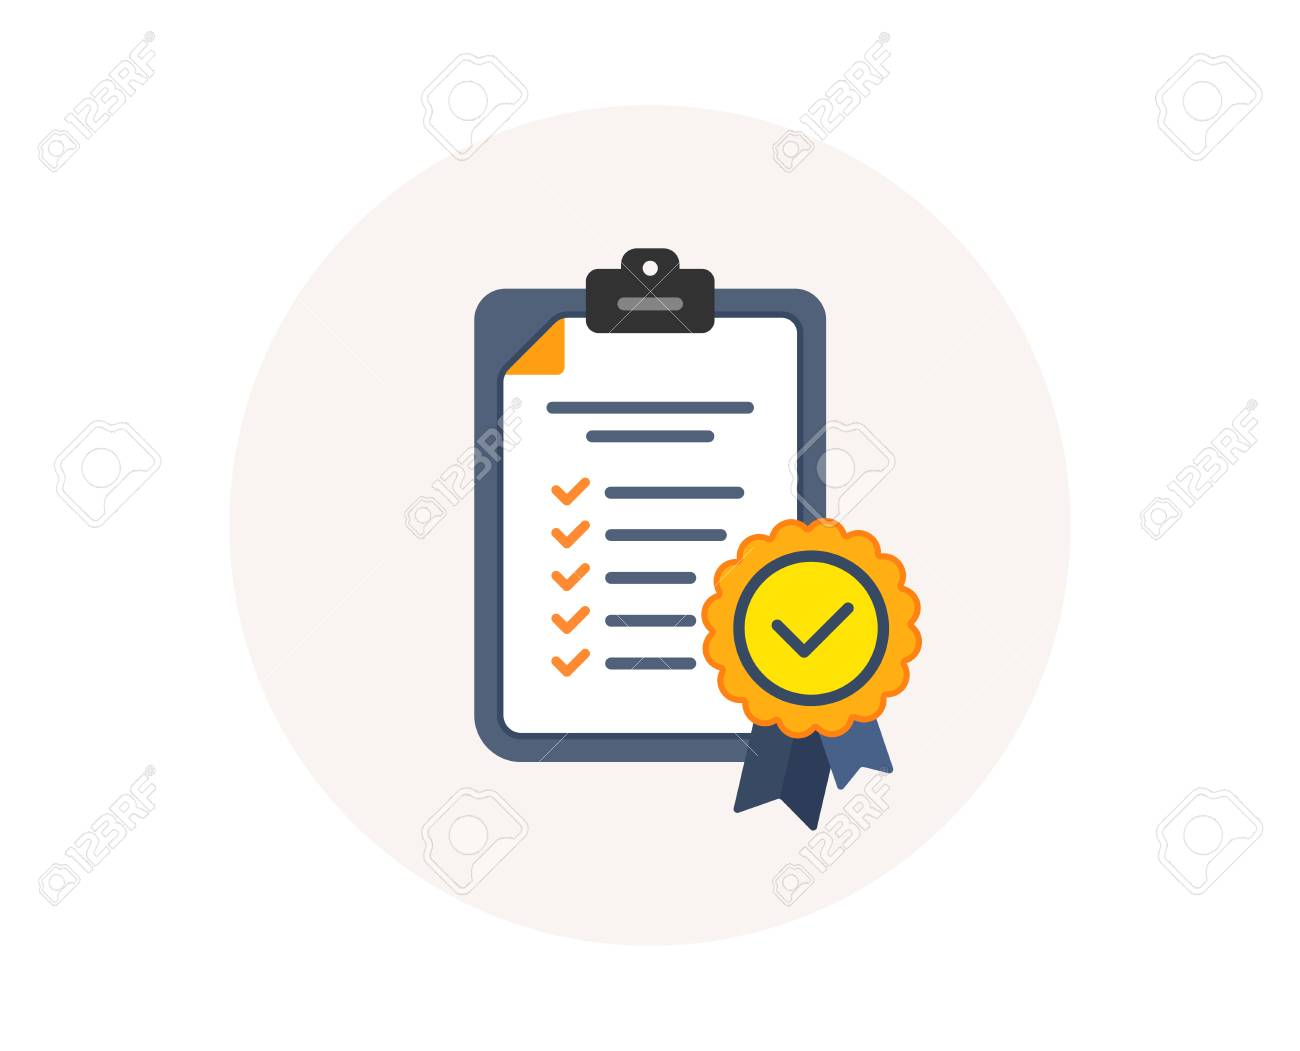 In compliance icon. Checklist sign. Certified document symbol. Approval process. Company passed inspection. Colorful compliance icon in circle button. Certified approval checklist. Verified vector - 111407583